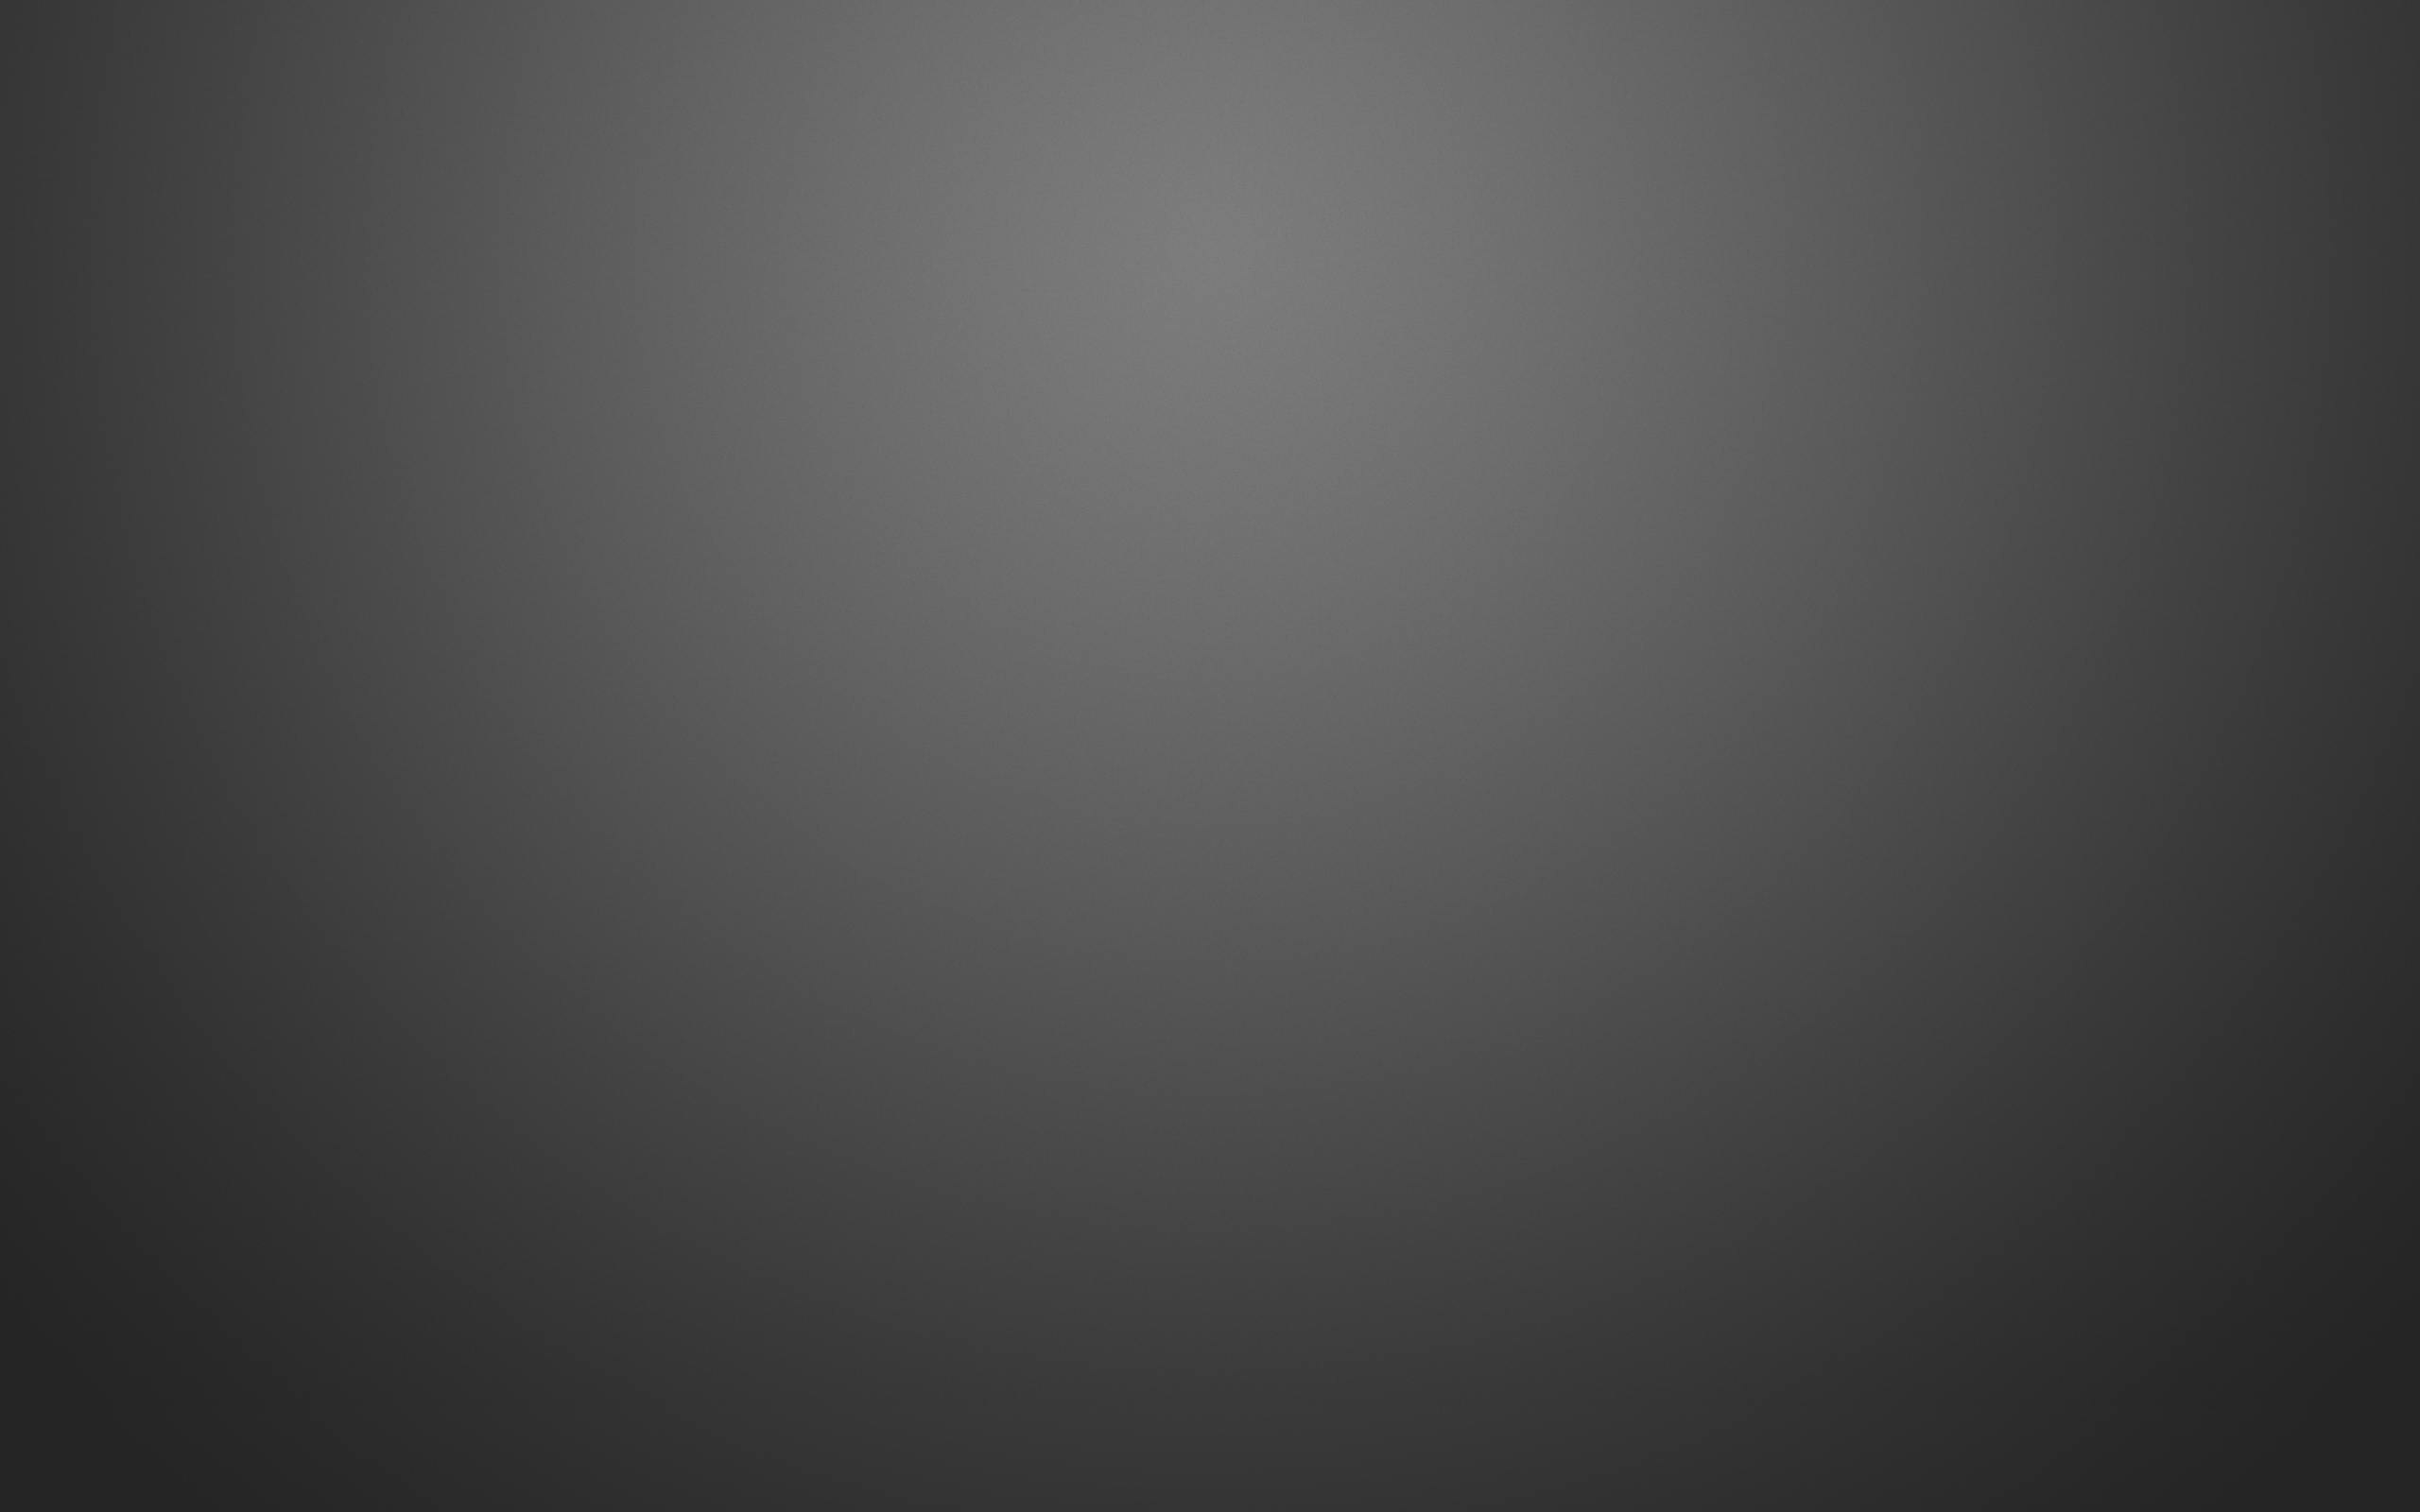 Plain-Dark-Grey-Background-3